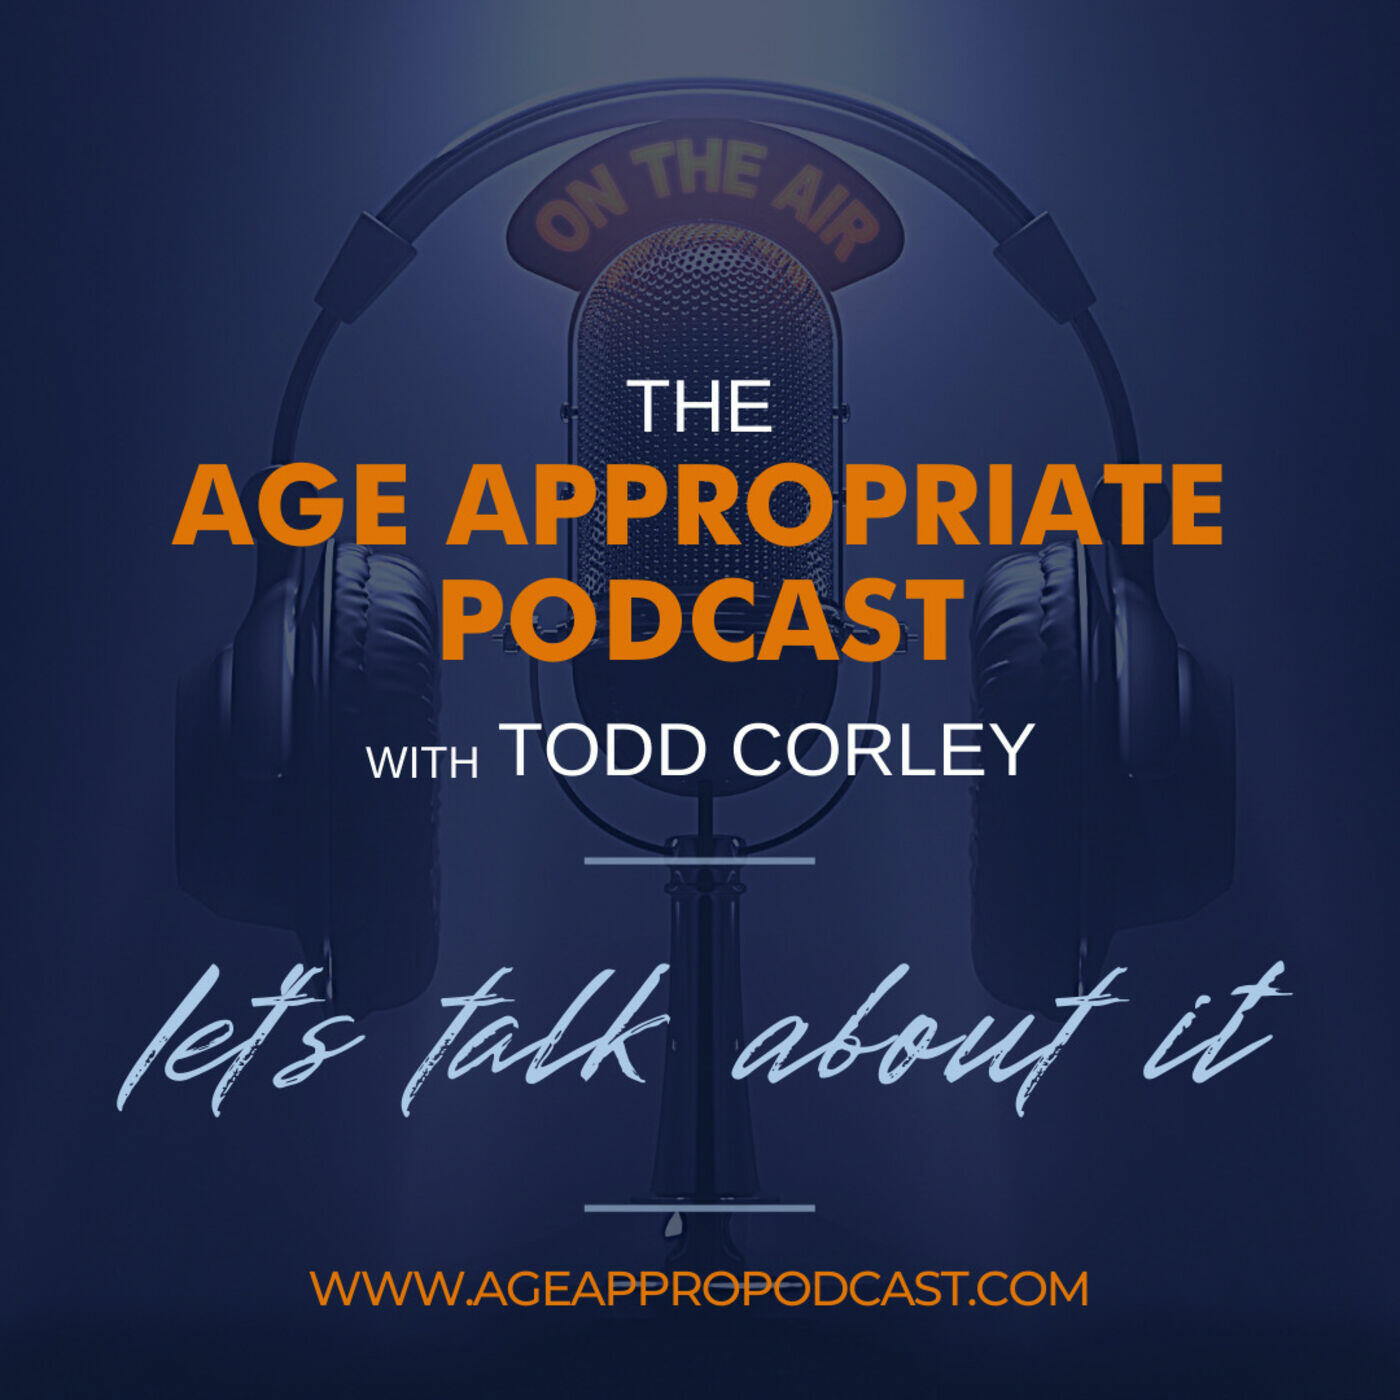 Age Appropriate: A Podcast for the Ages